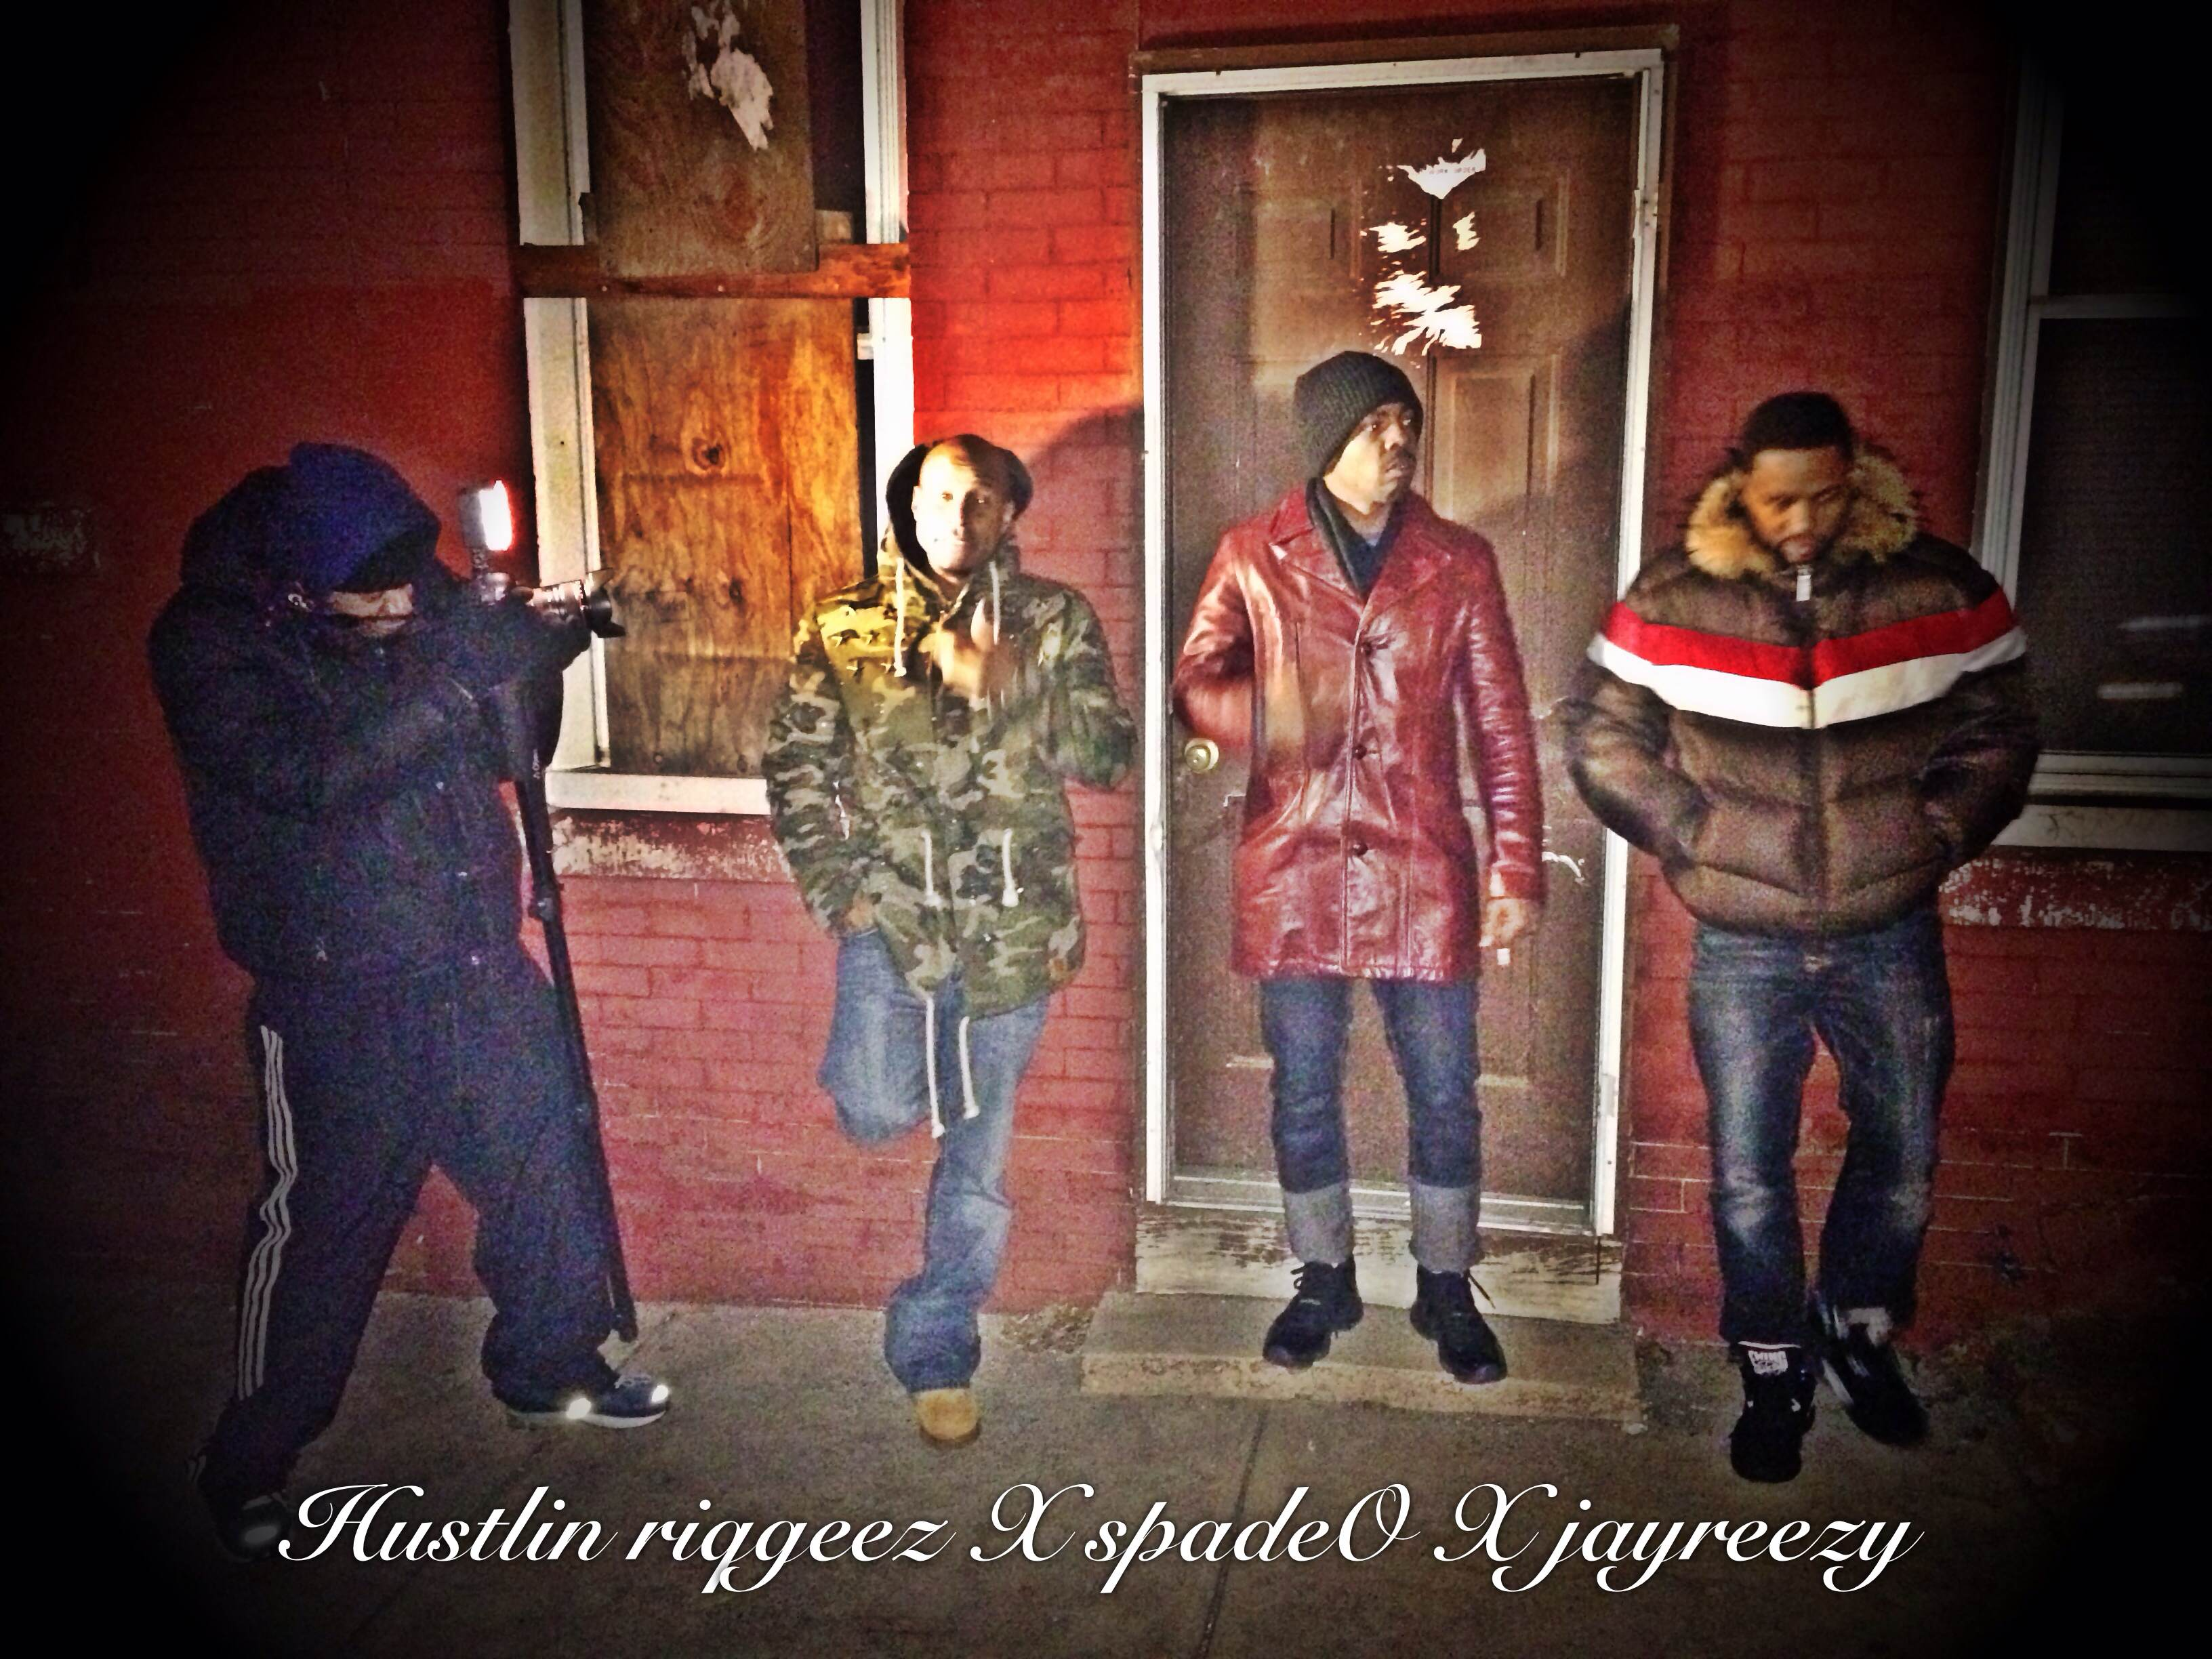 photo2 Riq Geez   Hustling Ft. Jay Reezy & Spade O (Behind The Scenes Video)